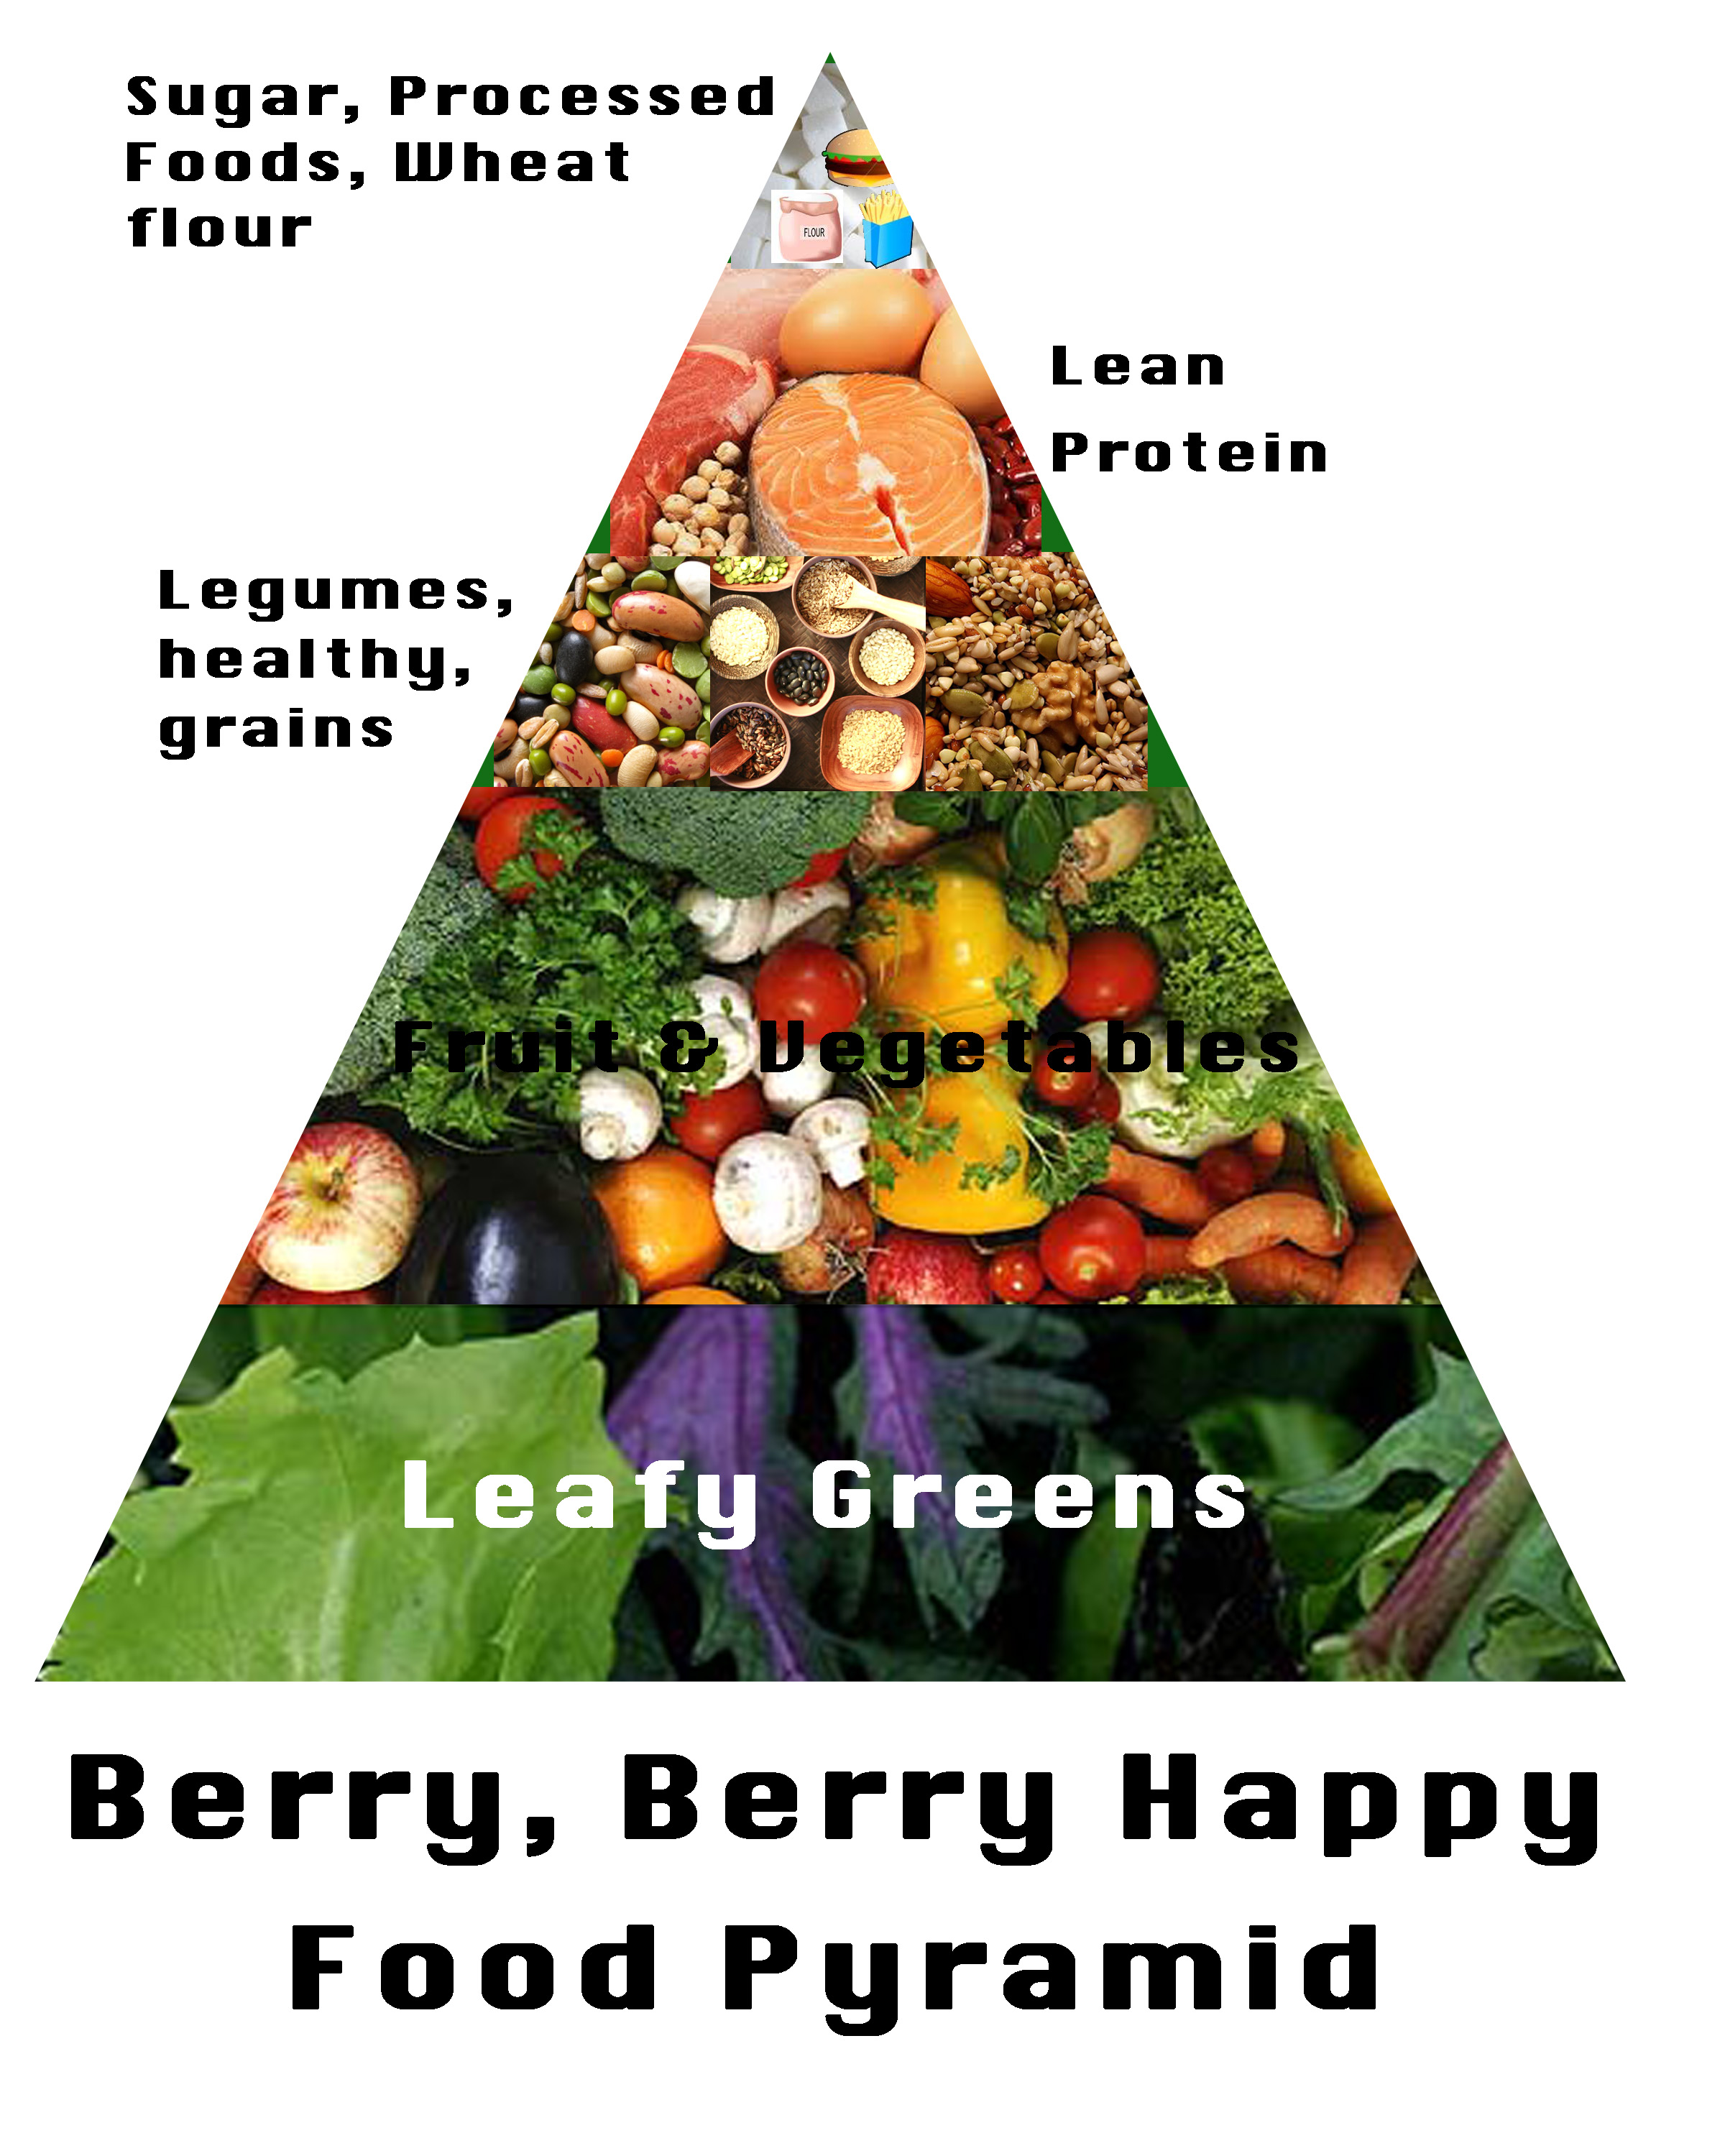 Food Pyramid Healthy Plate Food Groups The Original Five Food Groups